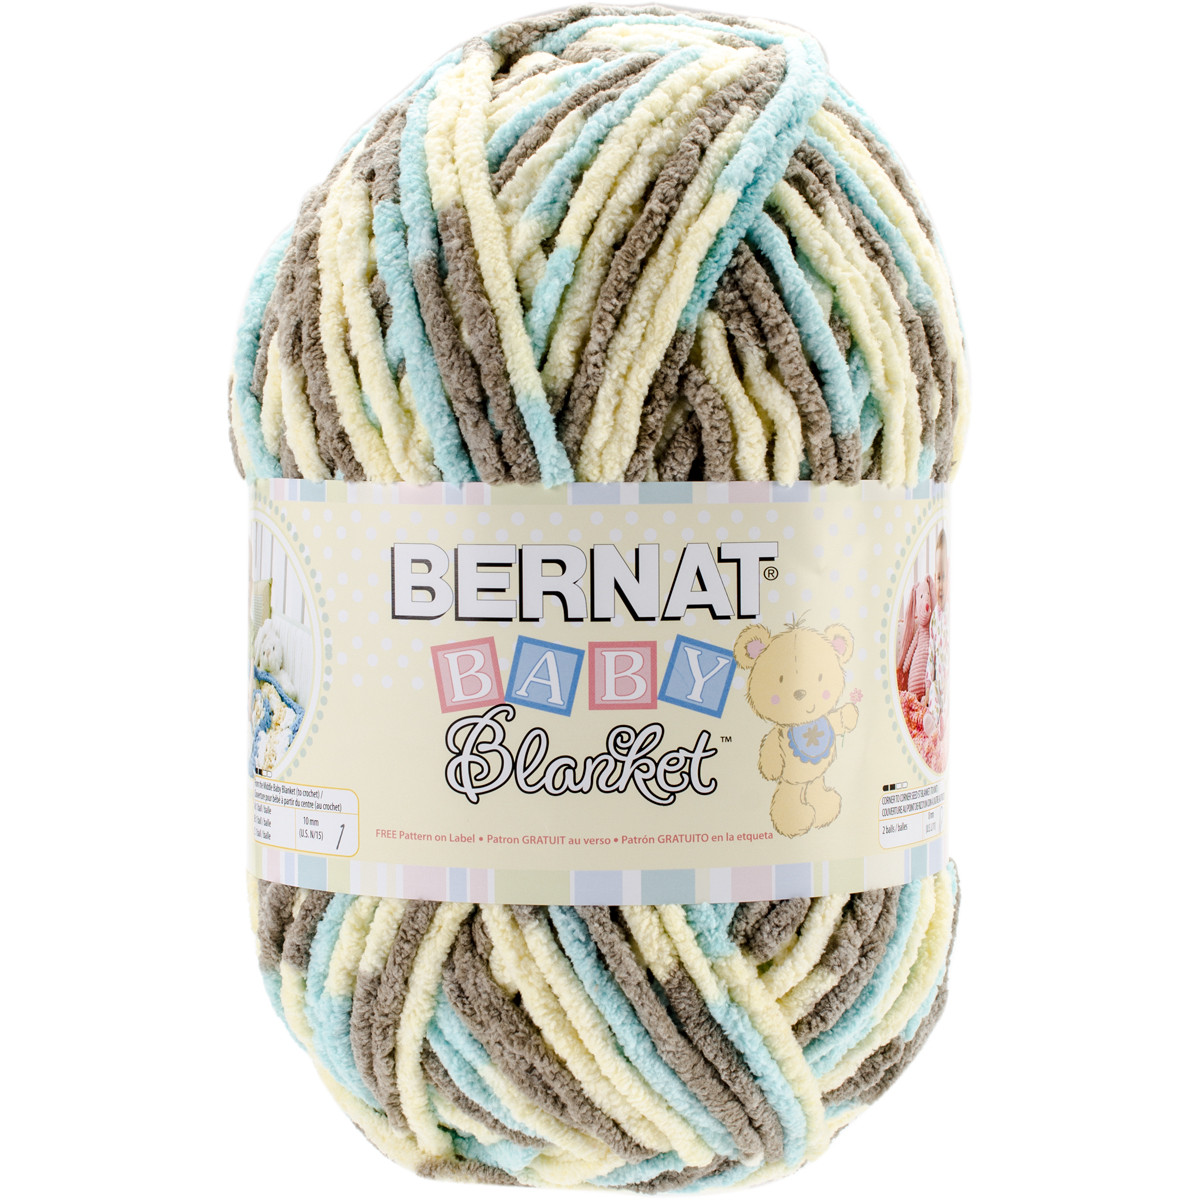 Bernat Blanket Big Ball Yarn Lovely Bernat Baby Blanket™ Big Ball Yarn Beach Babe Of Innovative 41 Ideas Bernat Blanket Big Ball Yarn